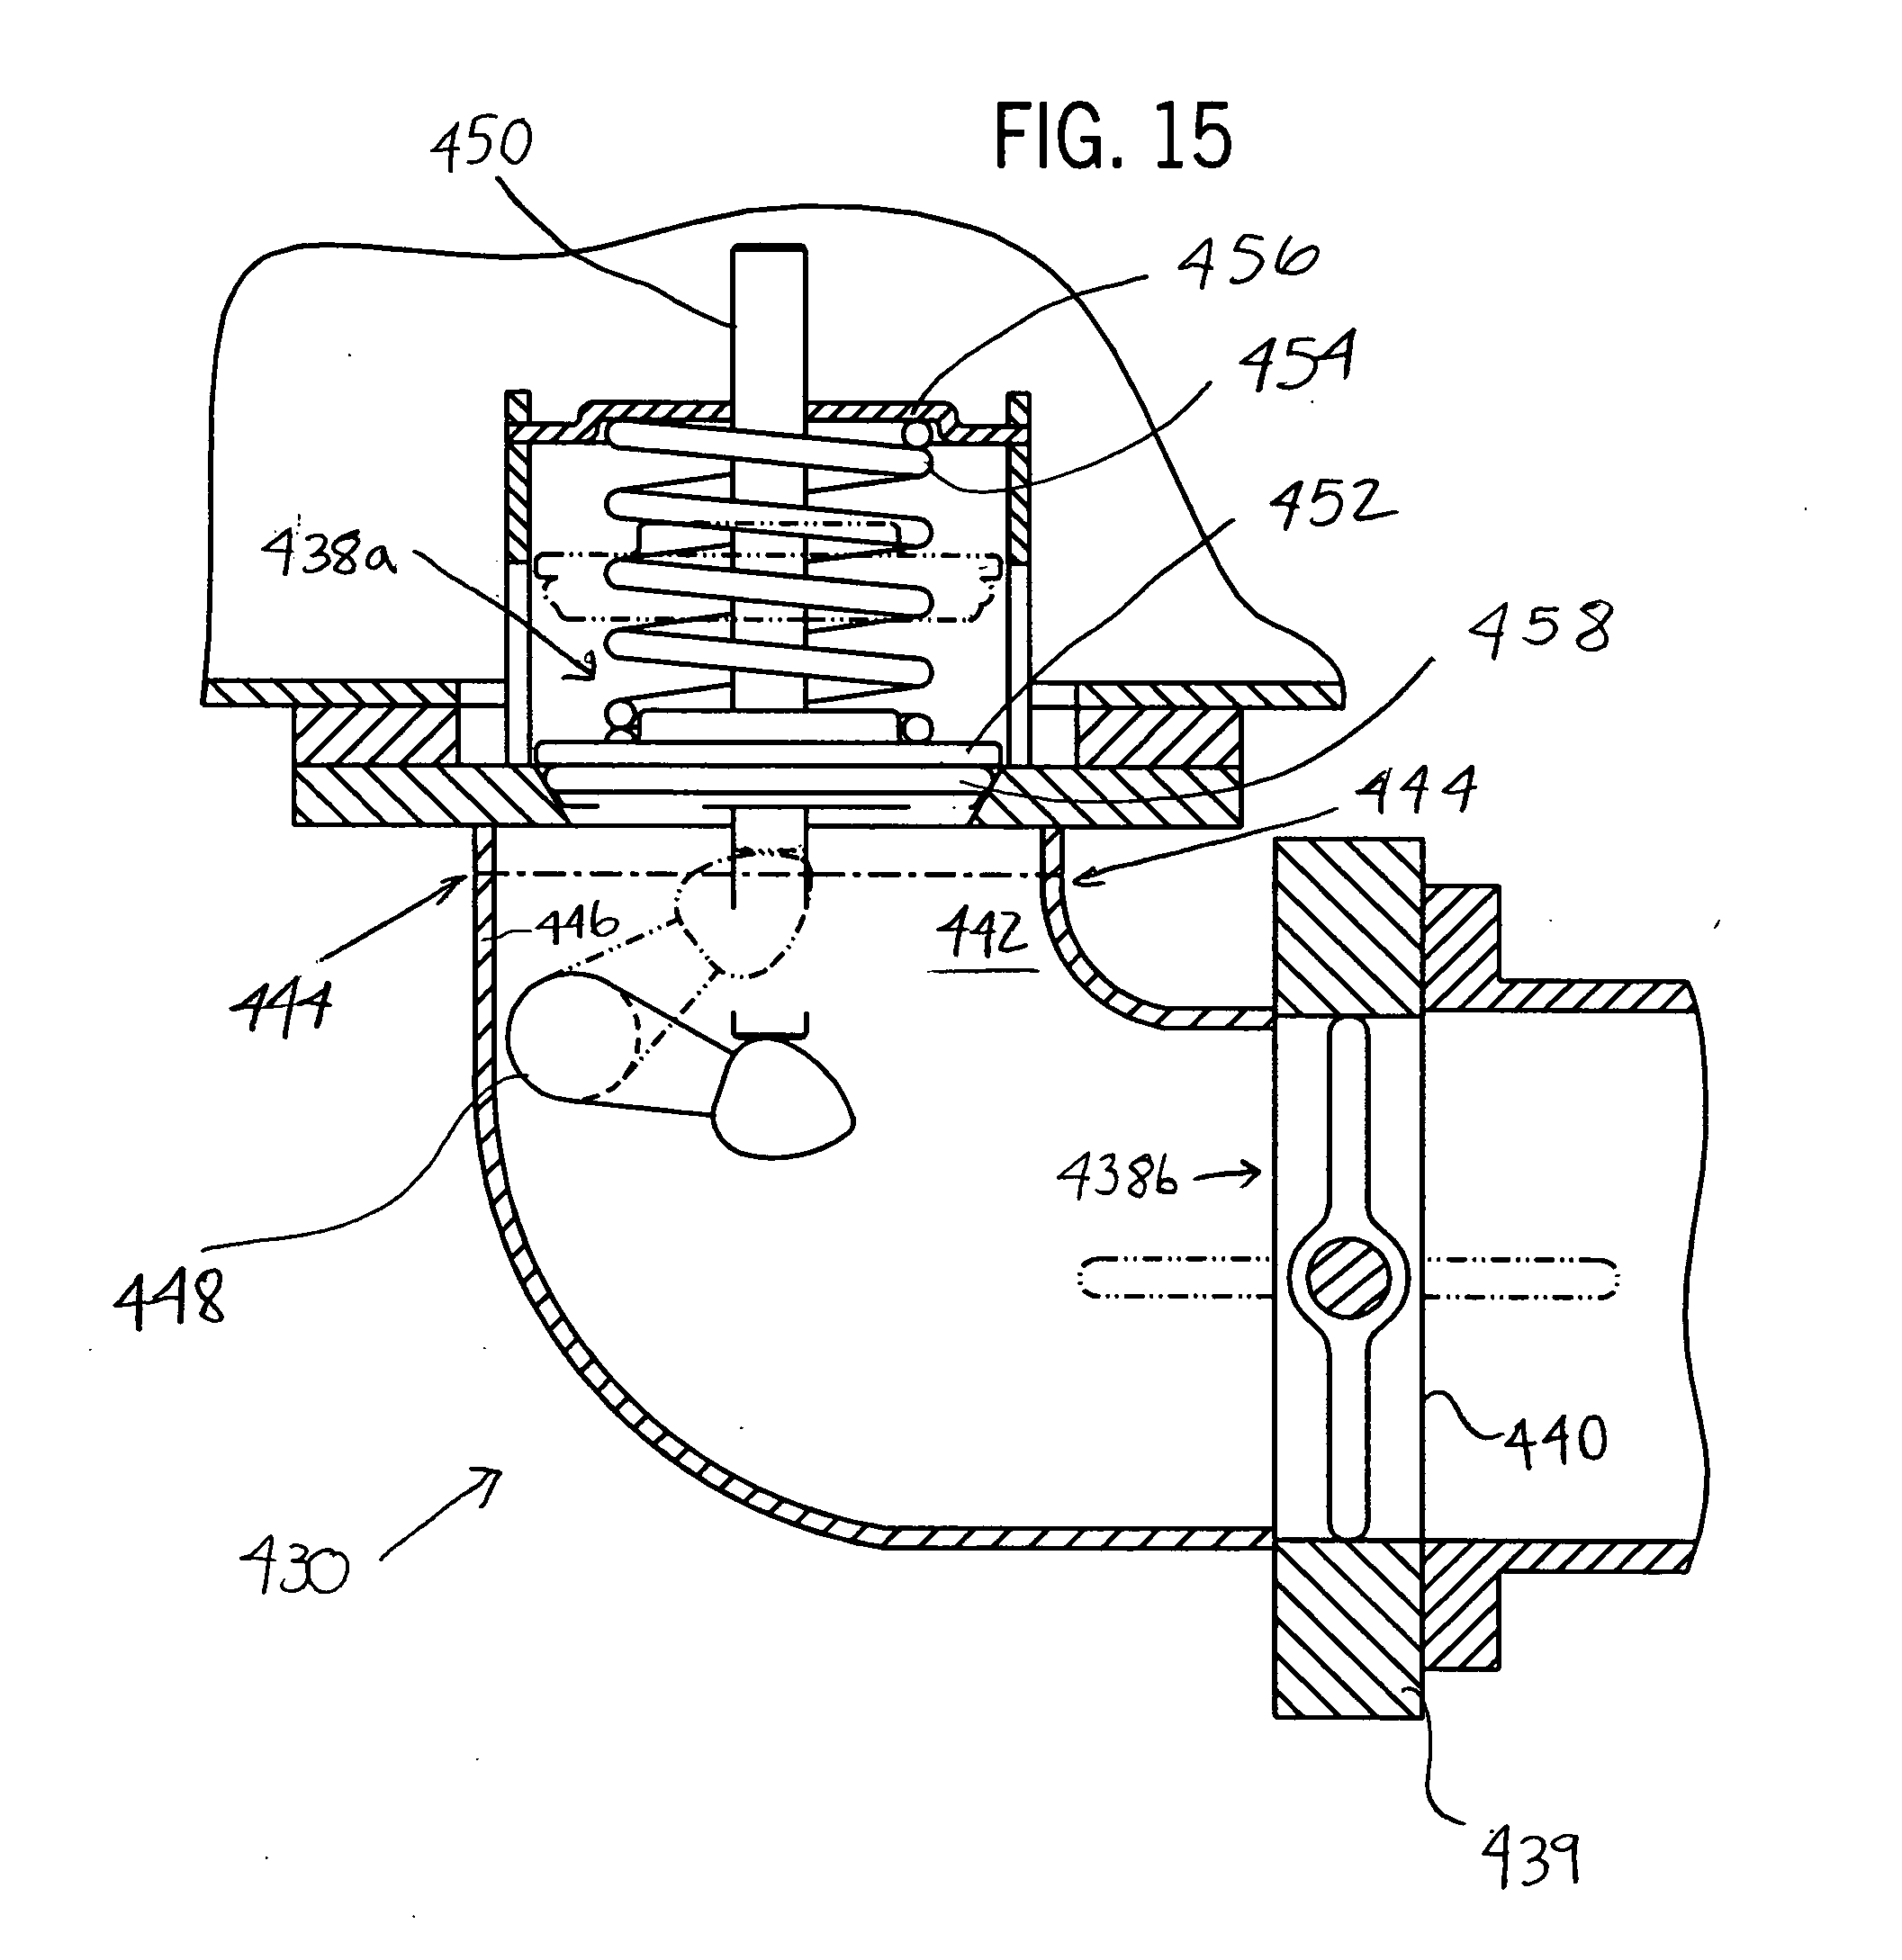 betts lighting wiring harness all about repair and wiring betts lighting wiring harness patent us20050061366 dual stop valve assembly for use in cargo